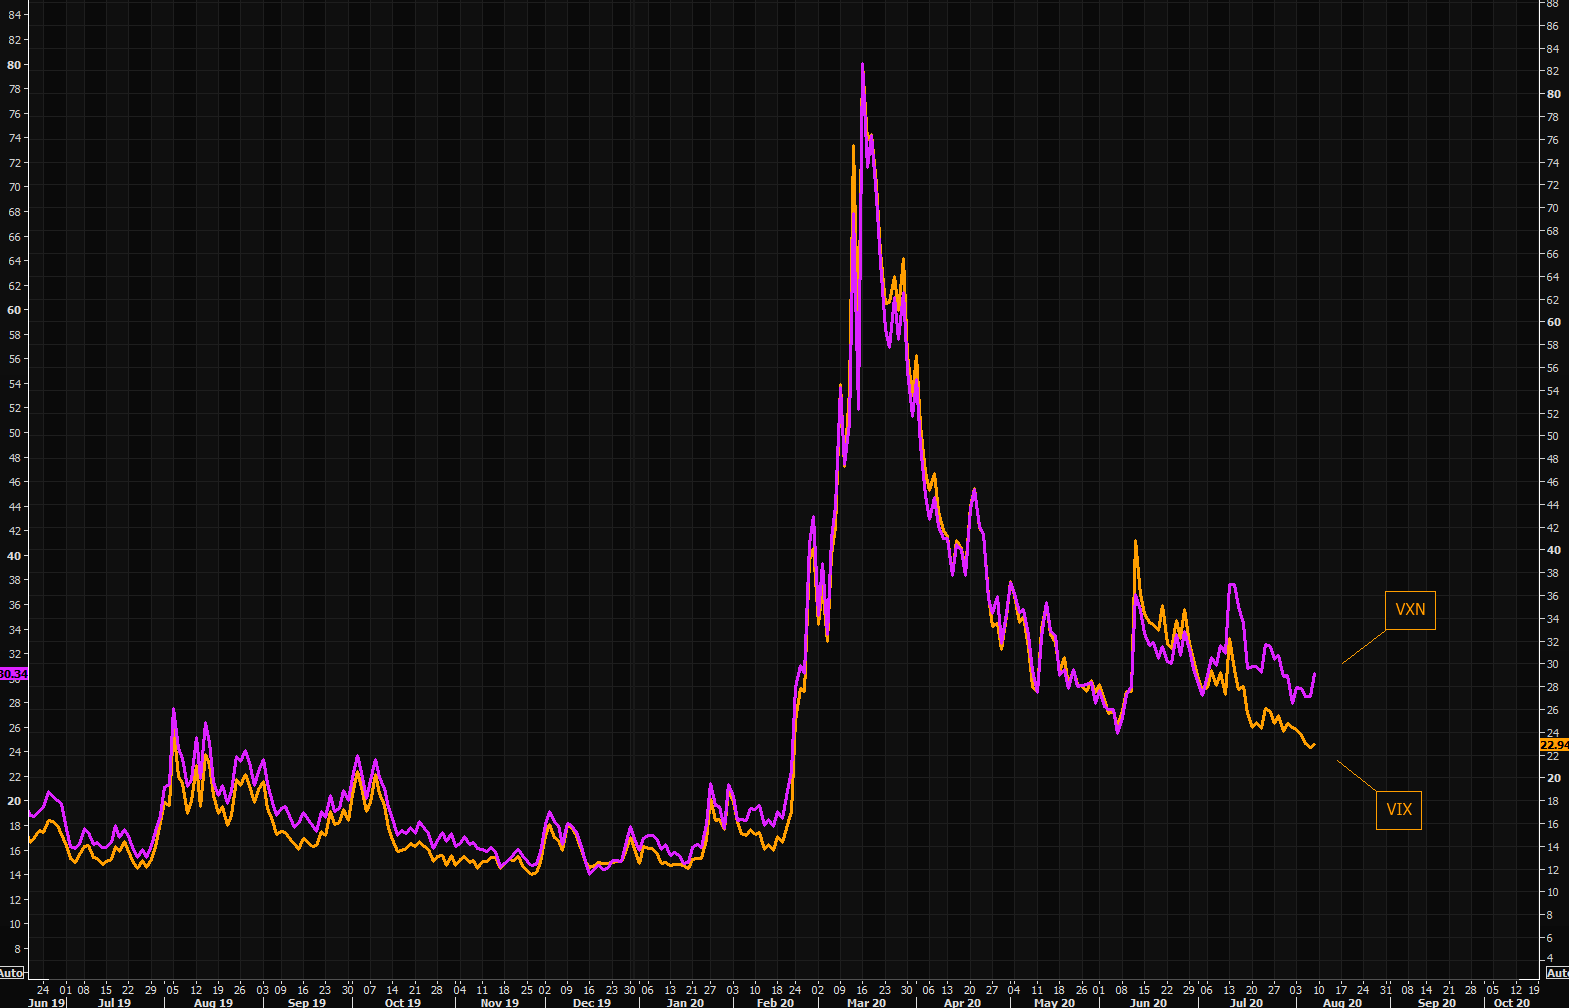 VIX -  can't see the wood for the trees?